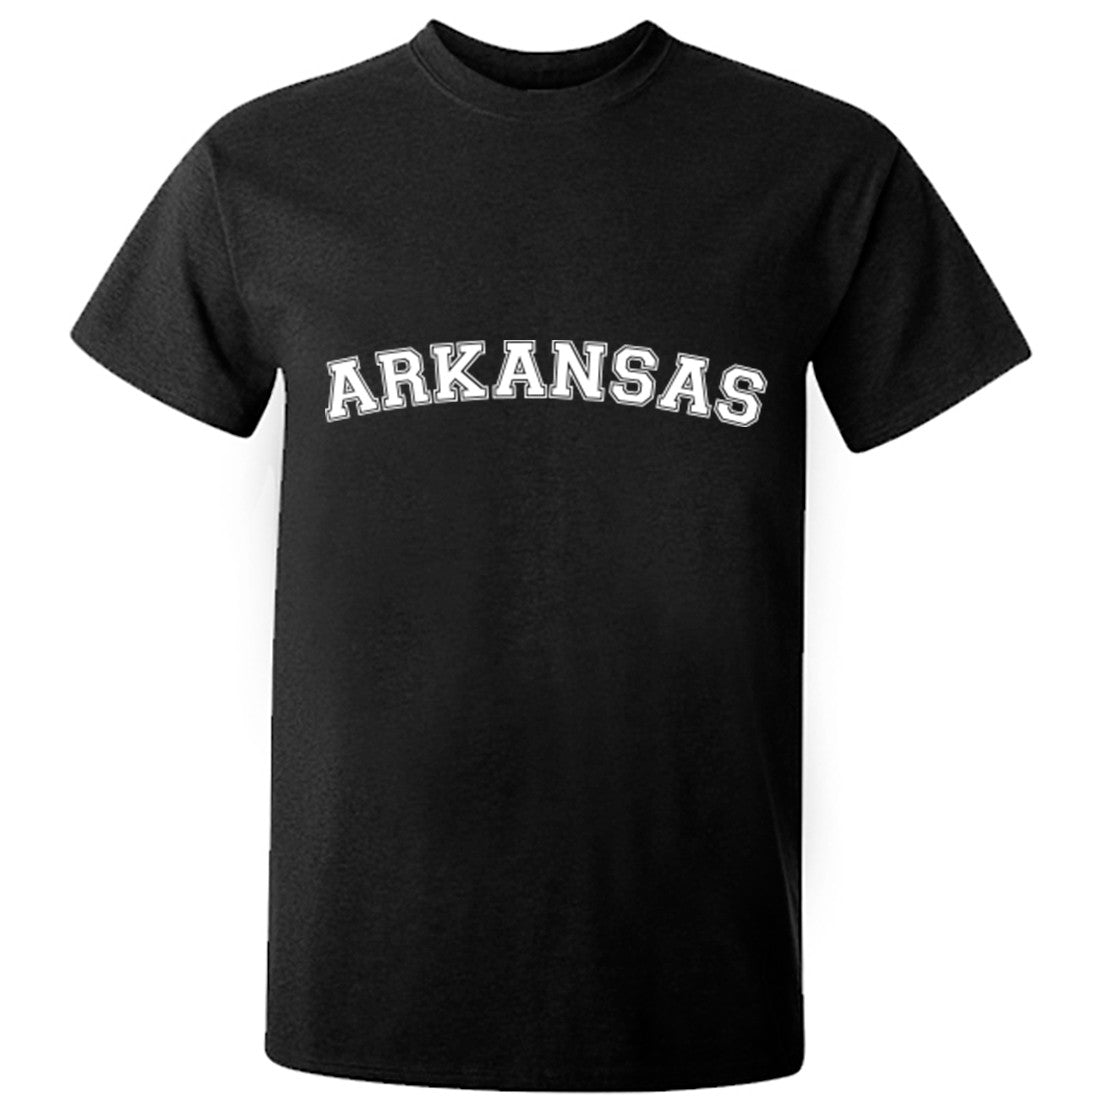 Arkansas Unisex Fit T-Shirt K1090